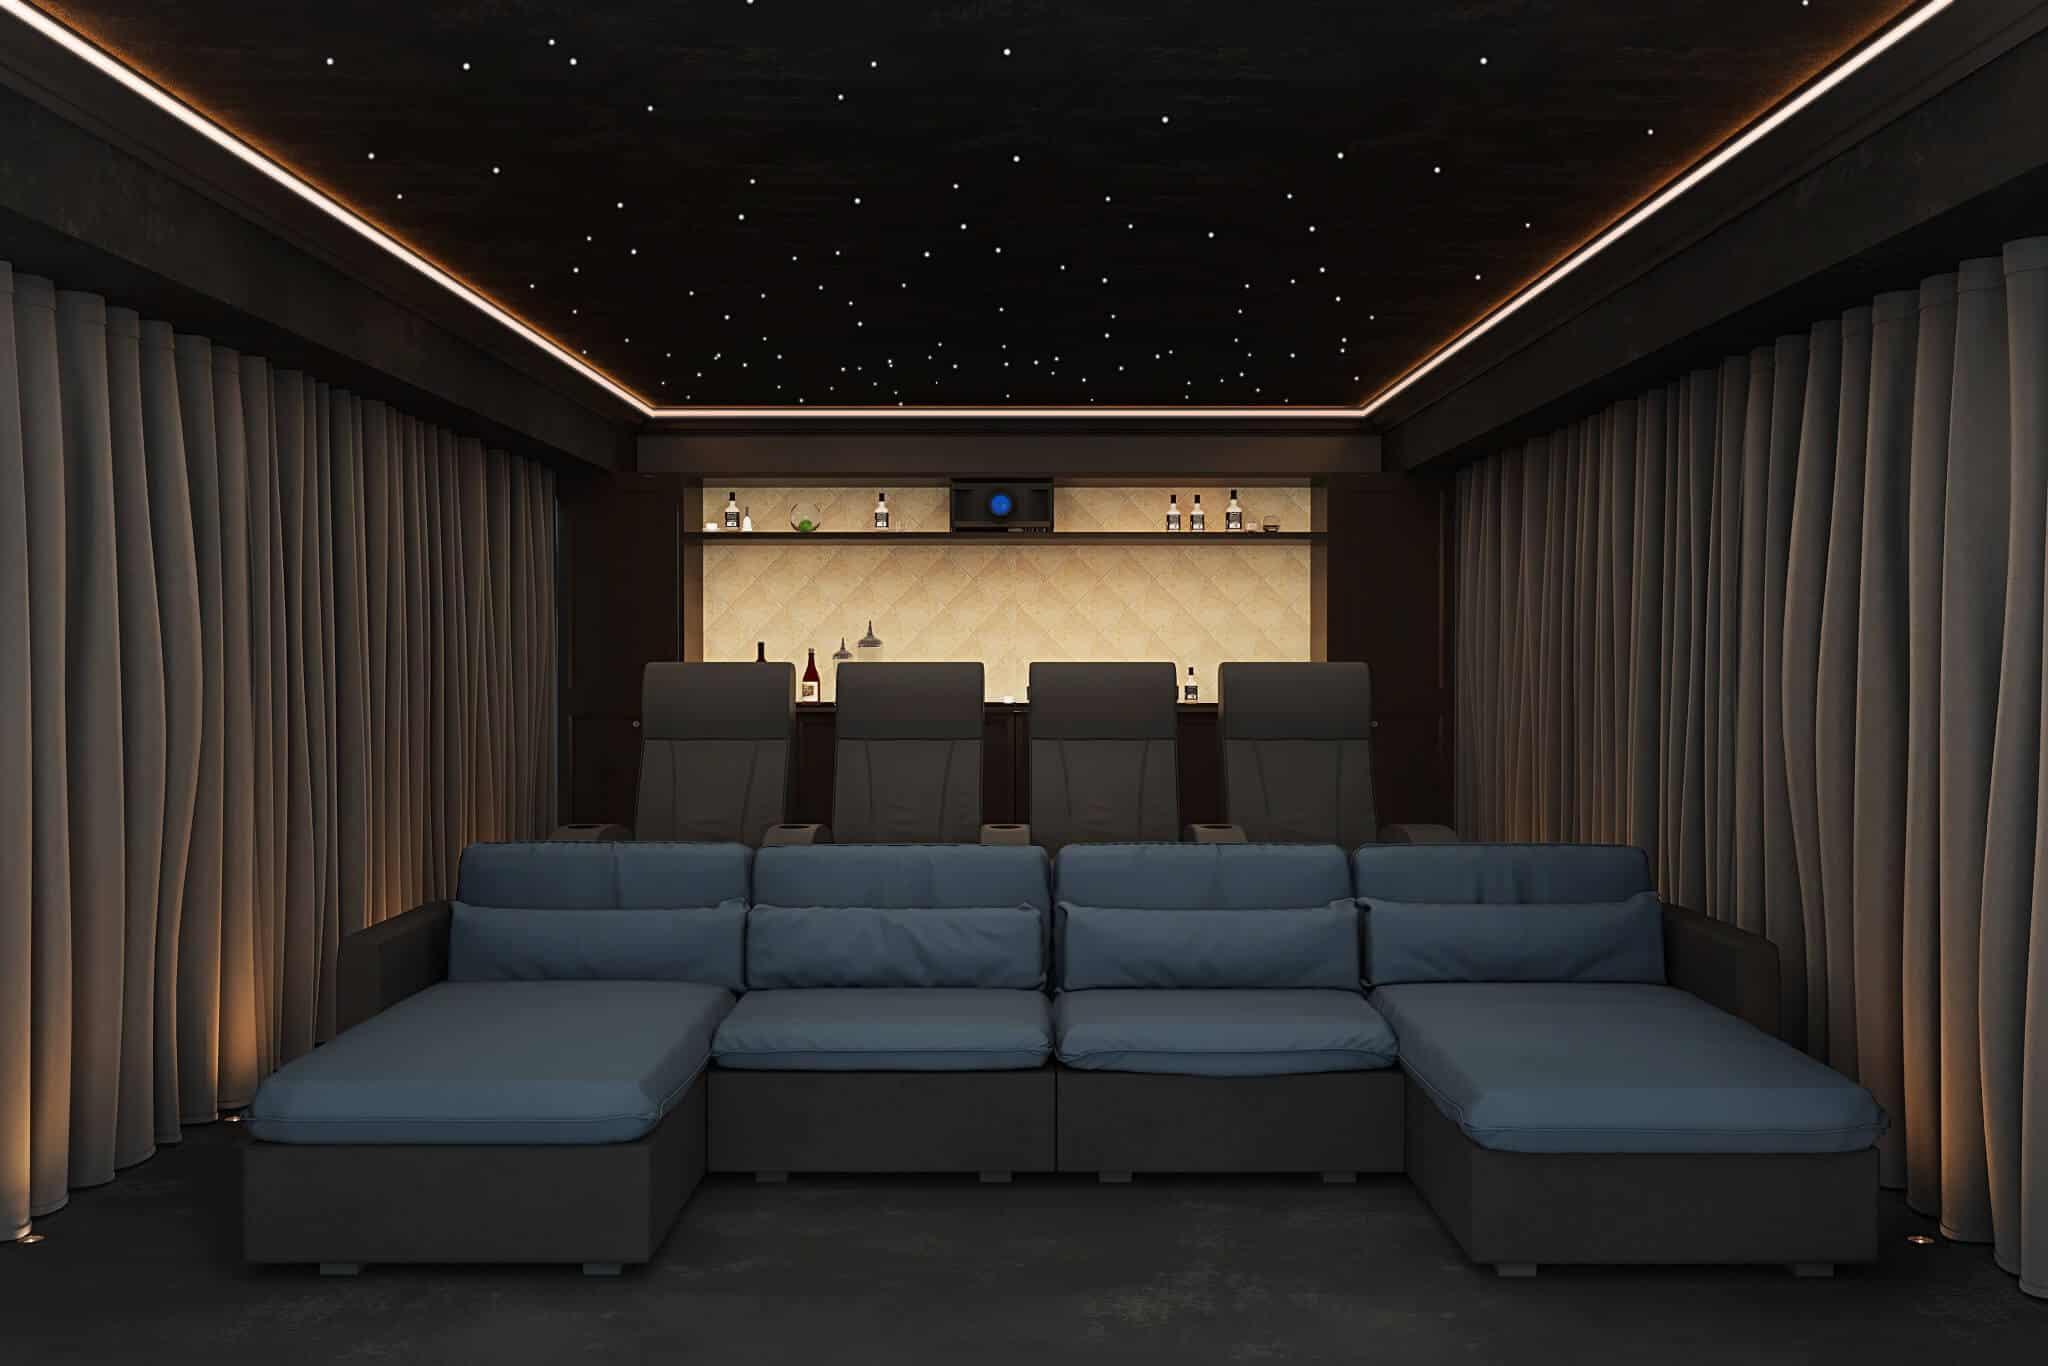 Cineak Intimo and Fortuny in a Home Cinema Room